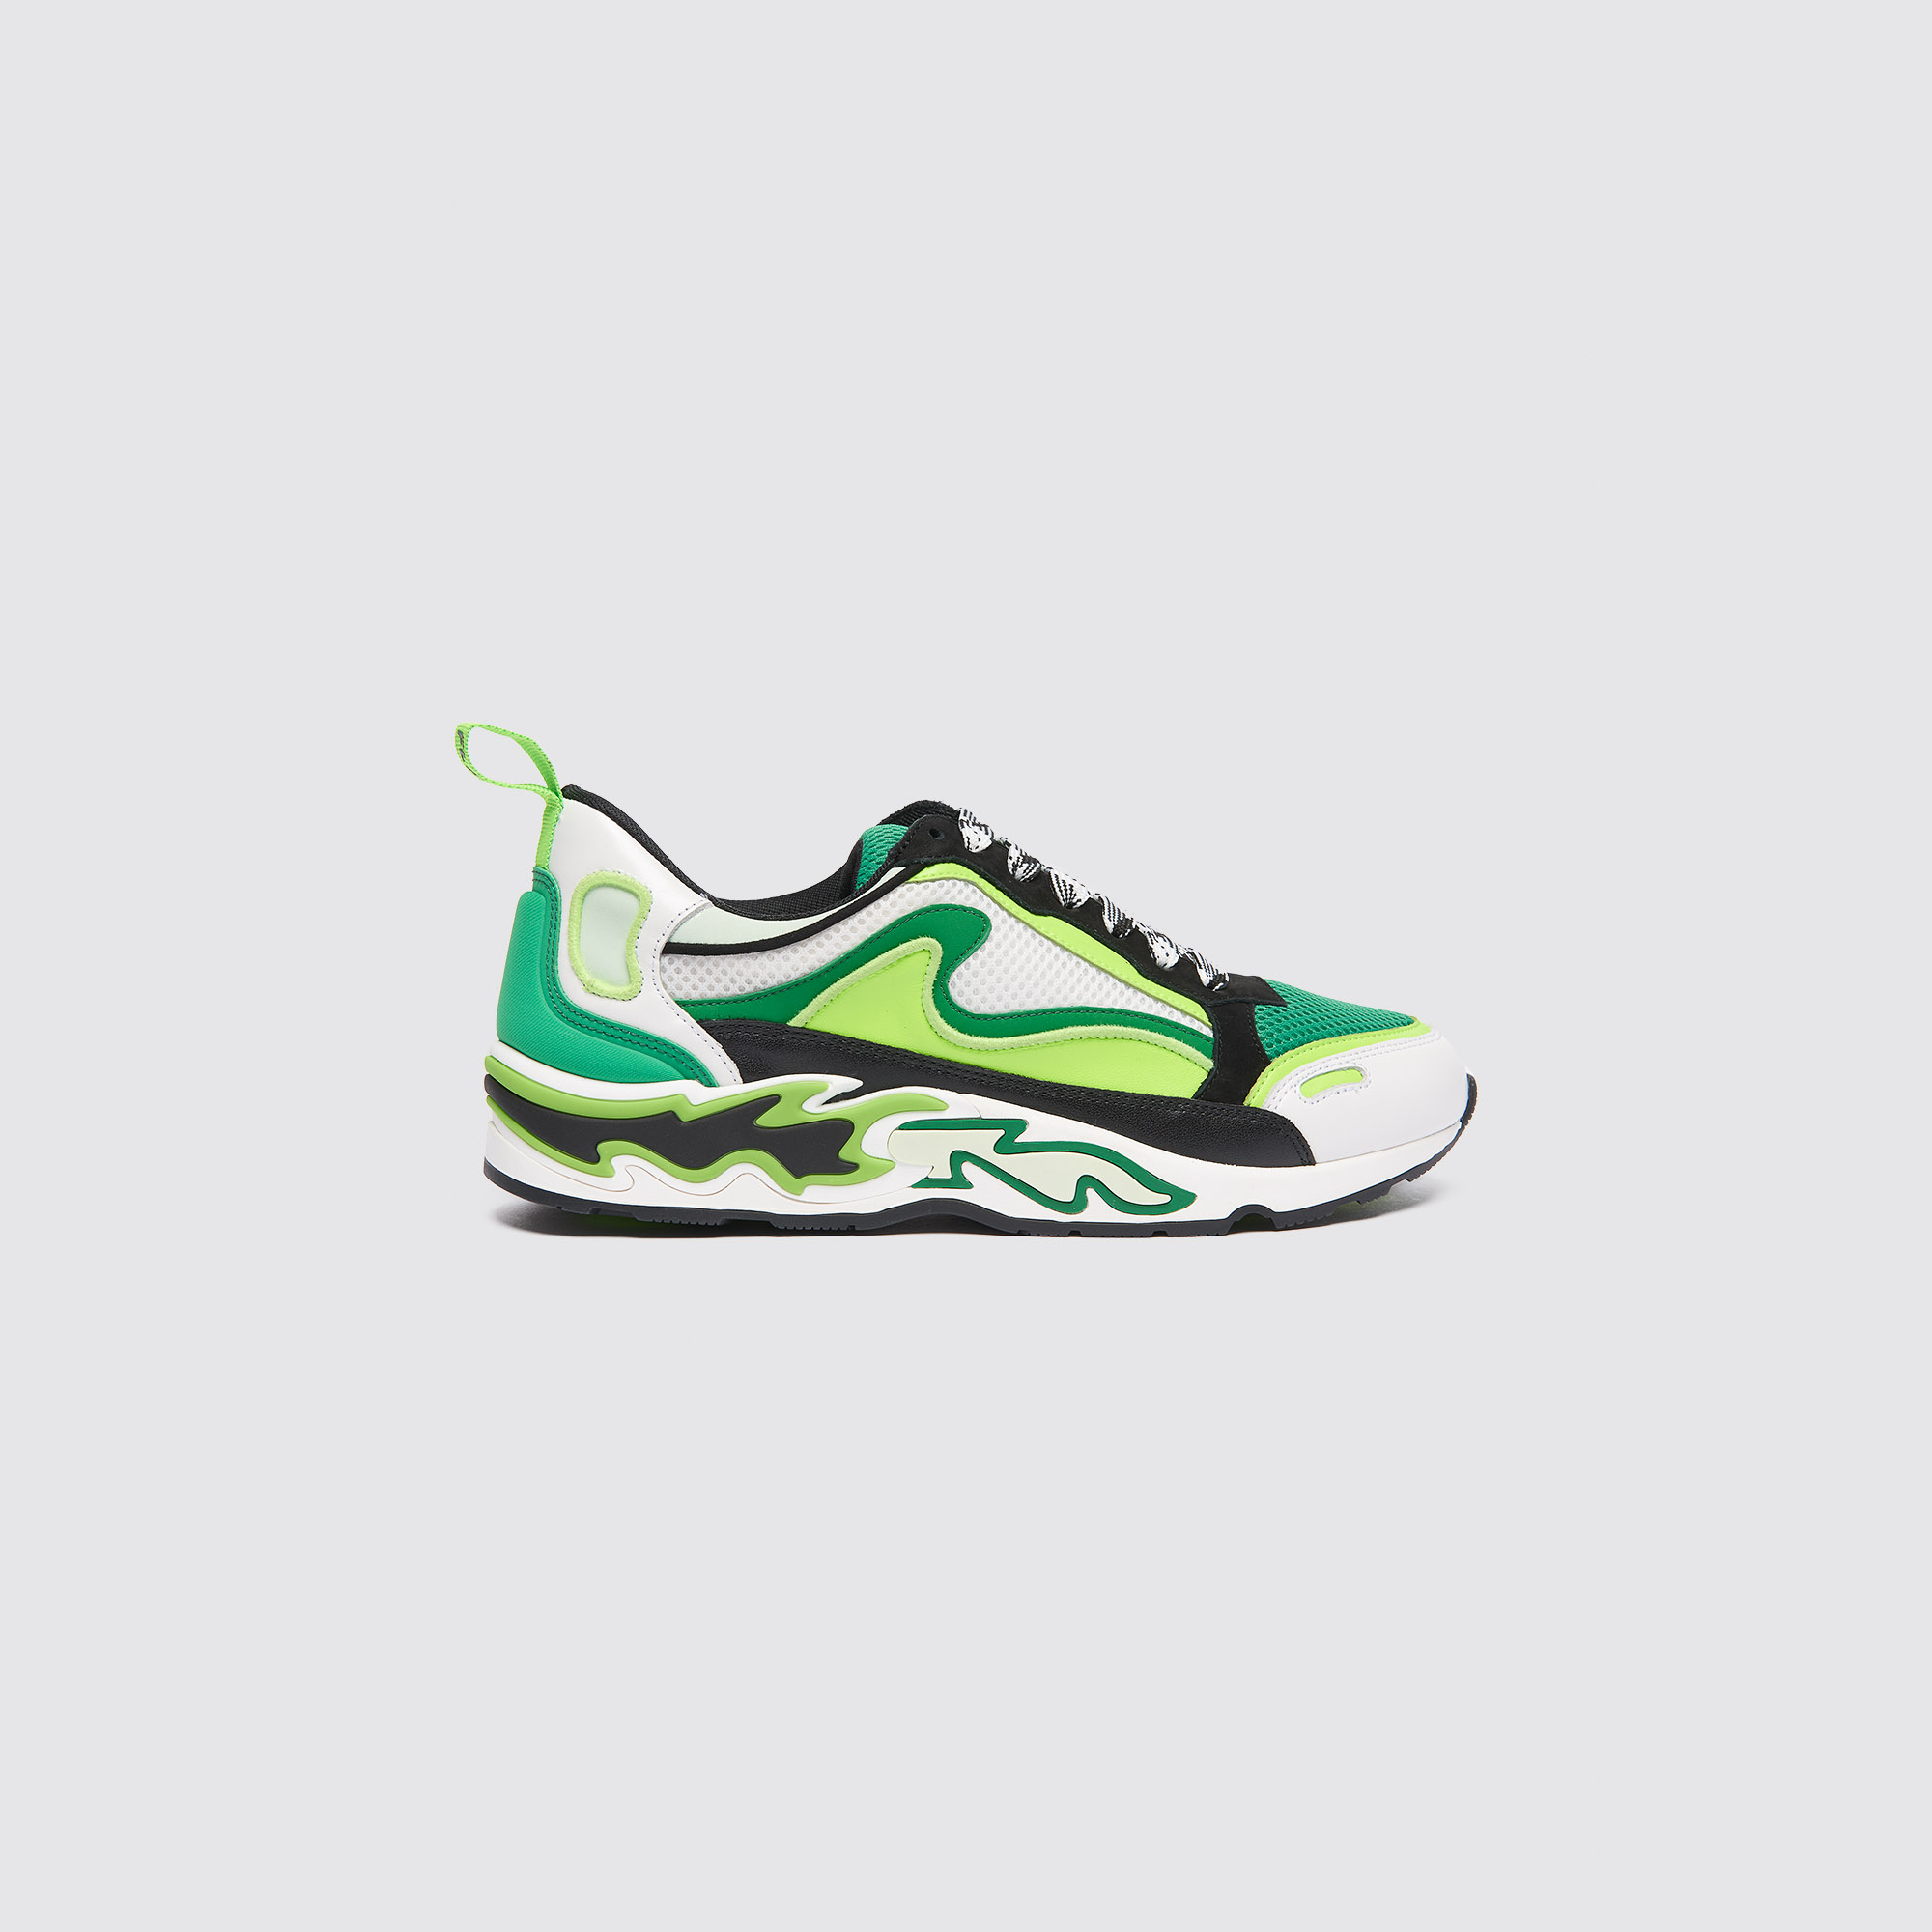 3be54bce25 Flame sneakers   Shoes color Vert fluo ...